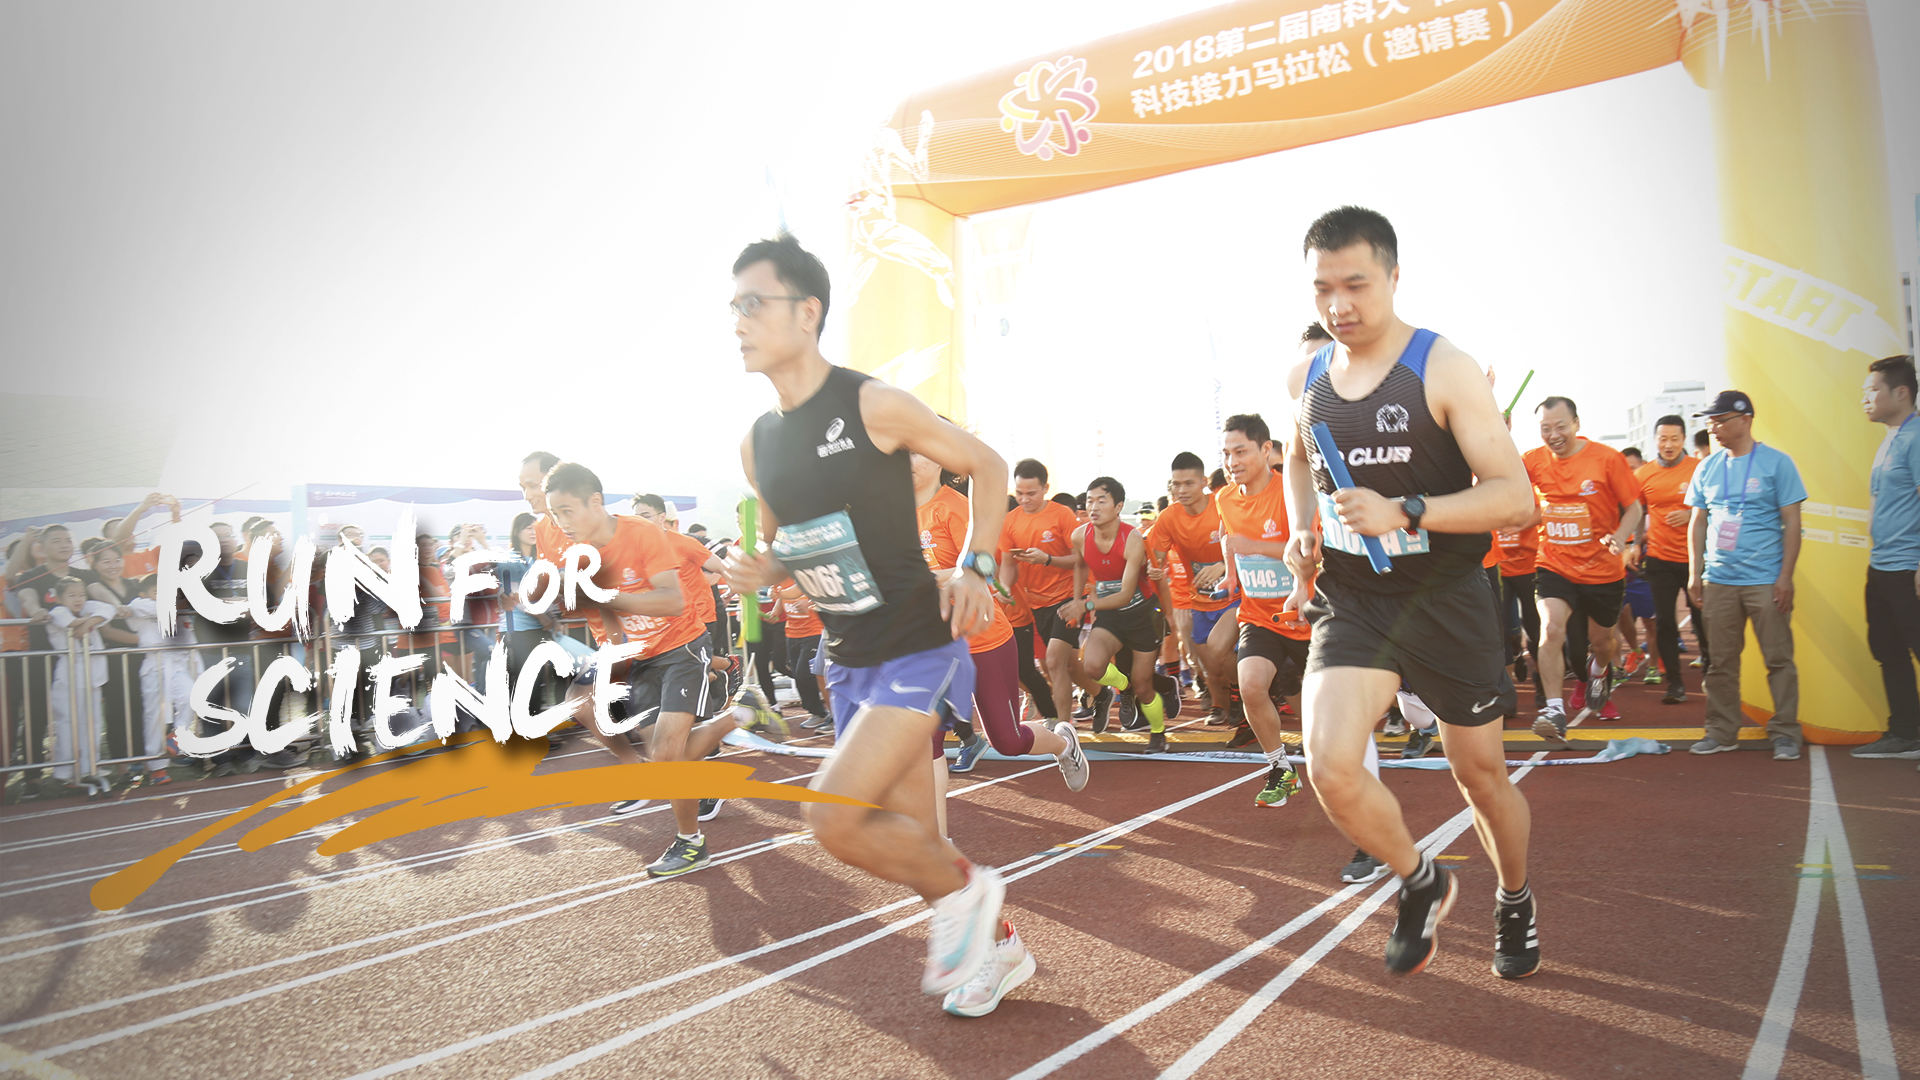 Run for science! 2nd SUSTech-Green Pine Campus Relay Marathon held